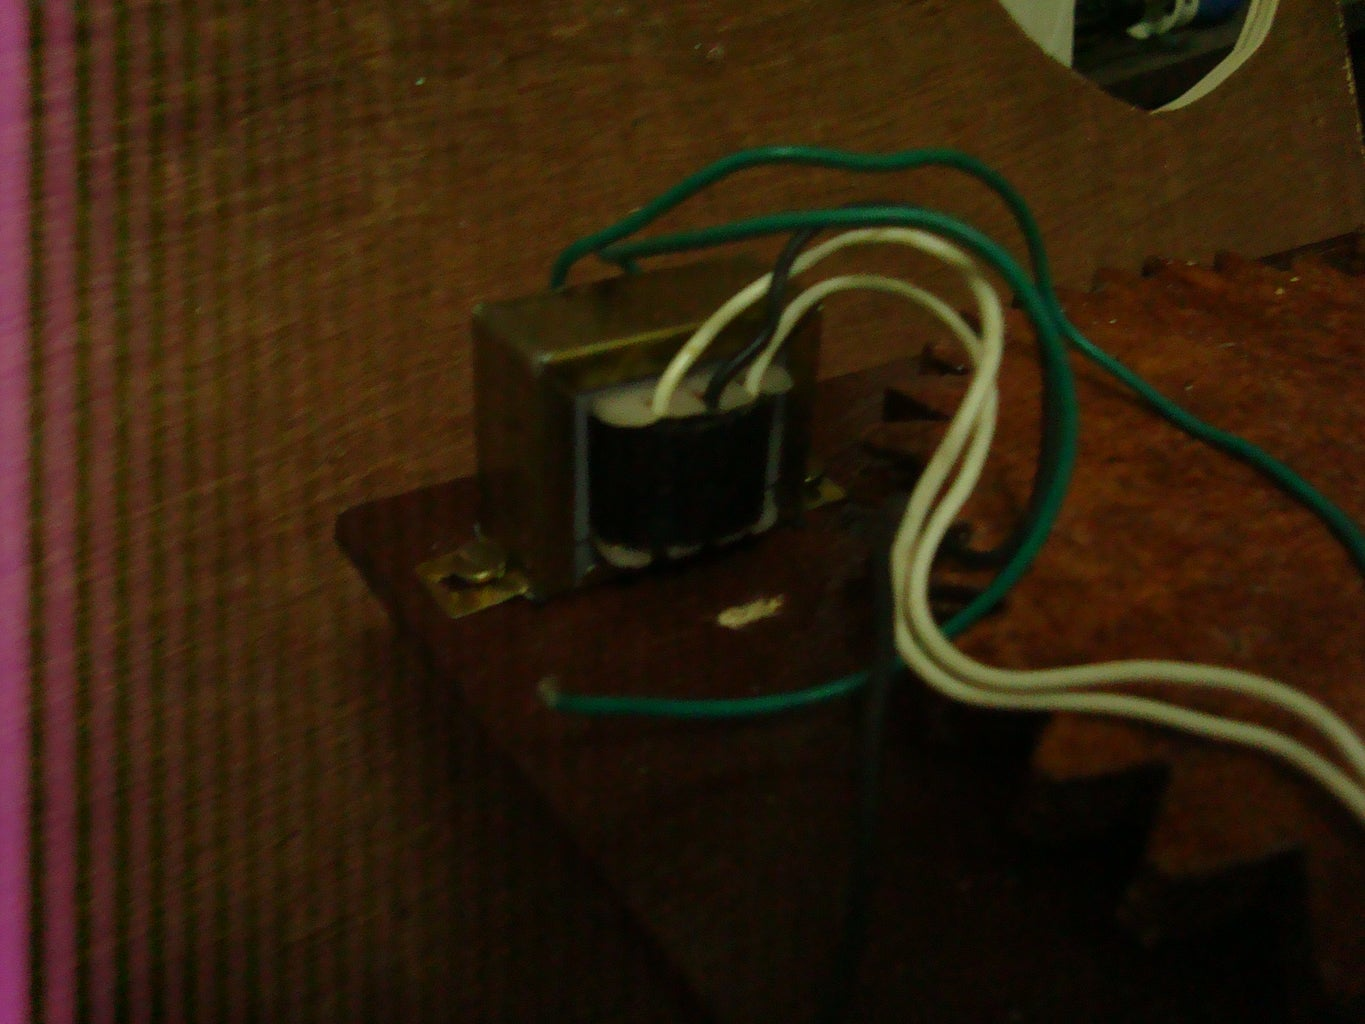 Placing the Power Supply